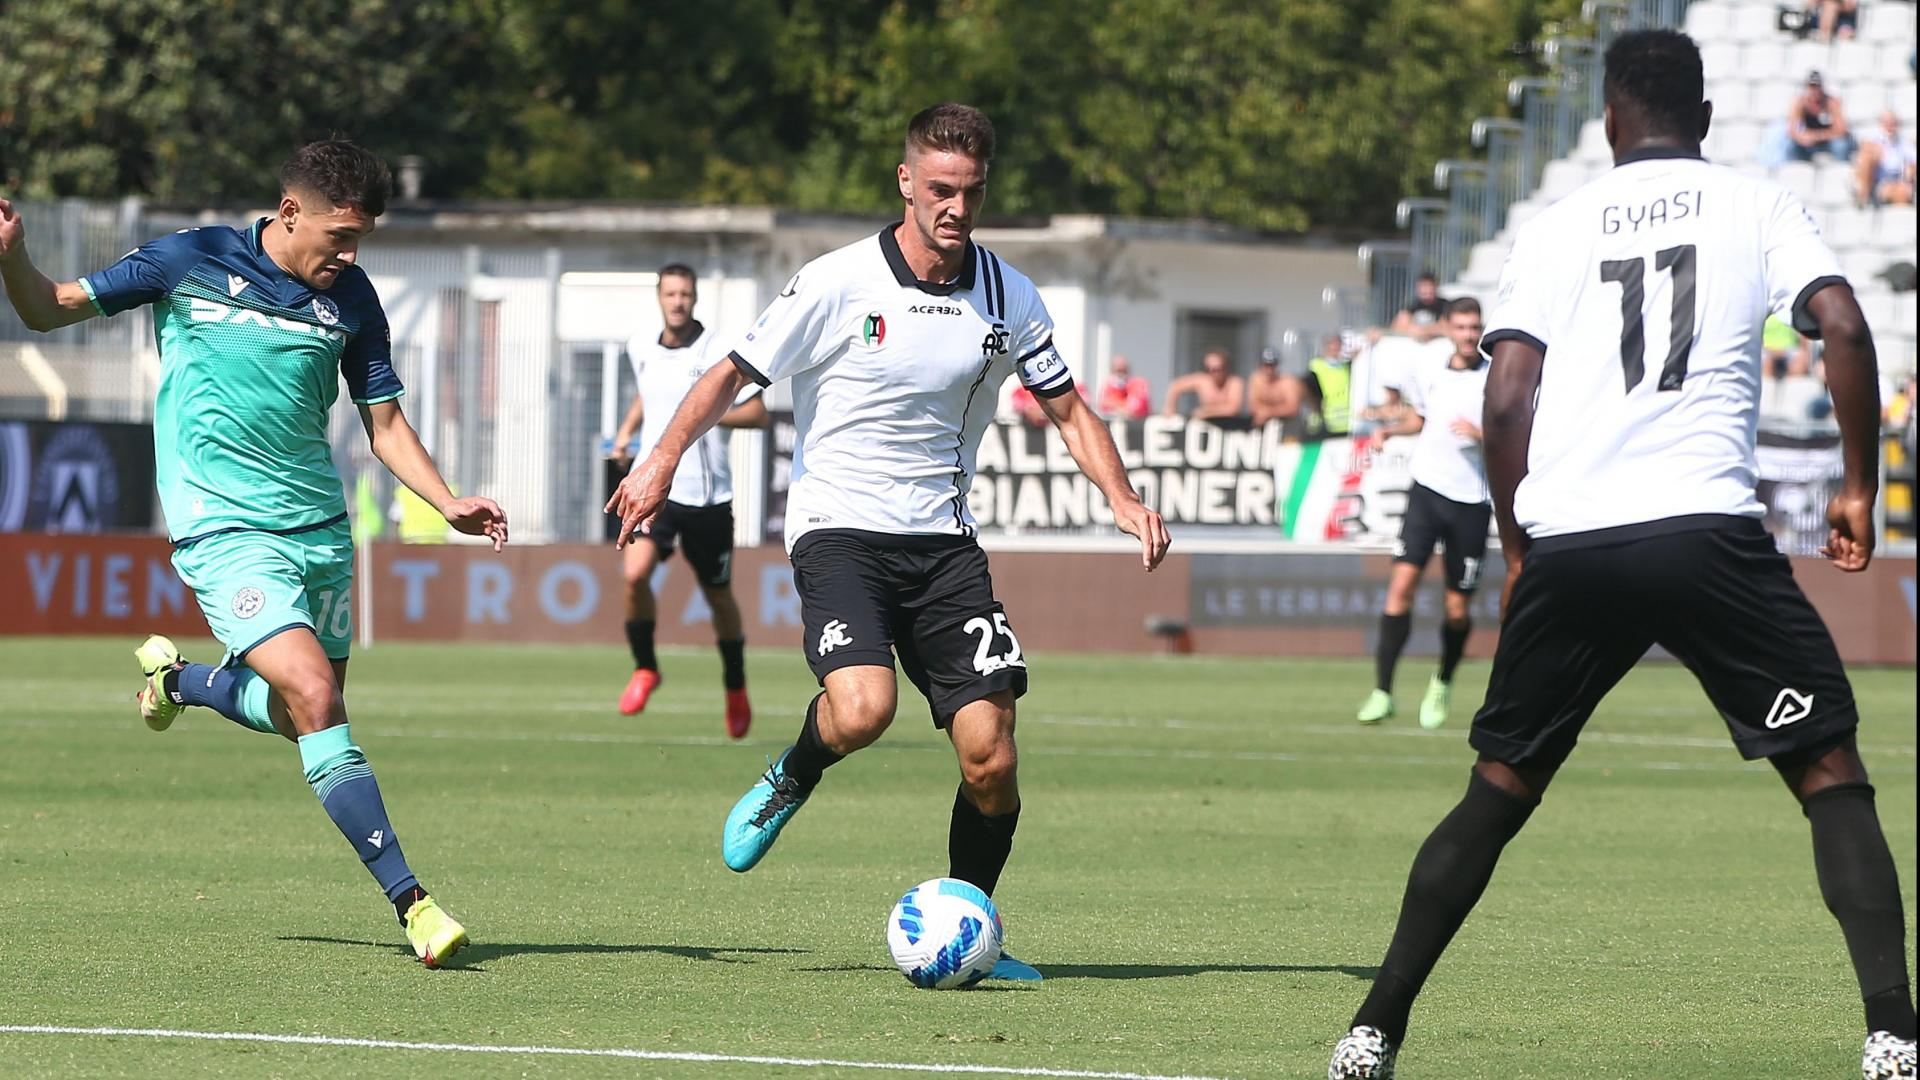 C.S. Follo: on Tuesday back to work in view of the match against Venezia